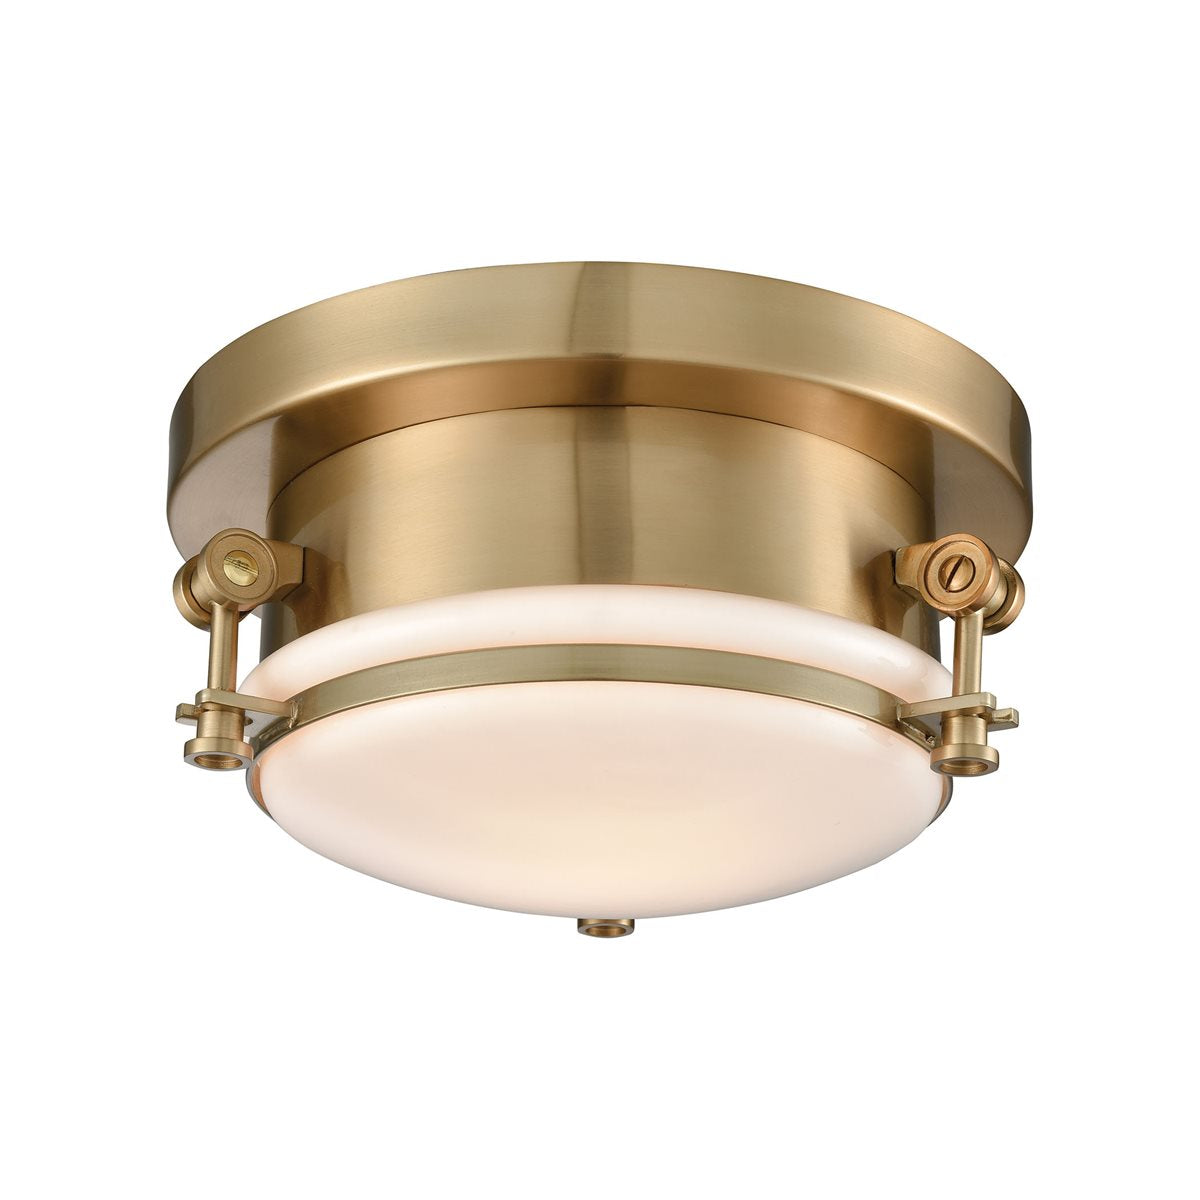 Riley 1 Flush Mount in Satin Brass design by BD Fine Lighting